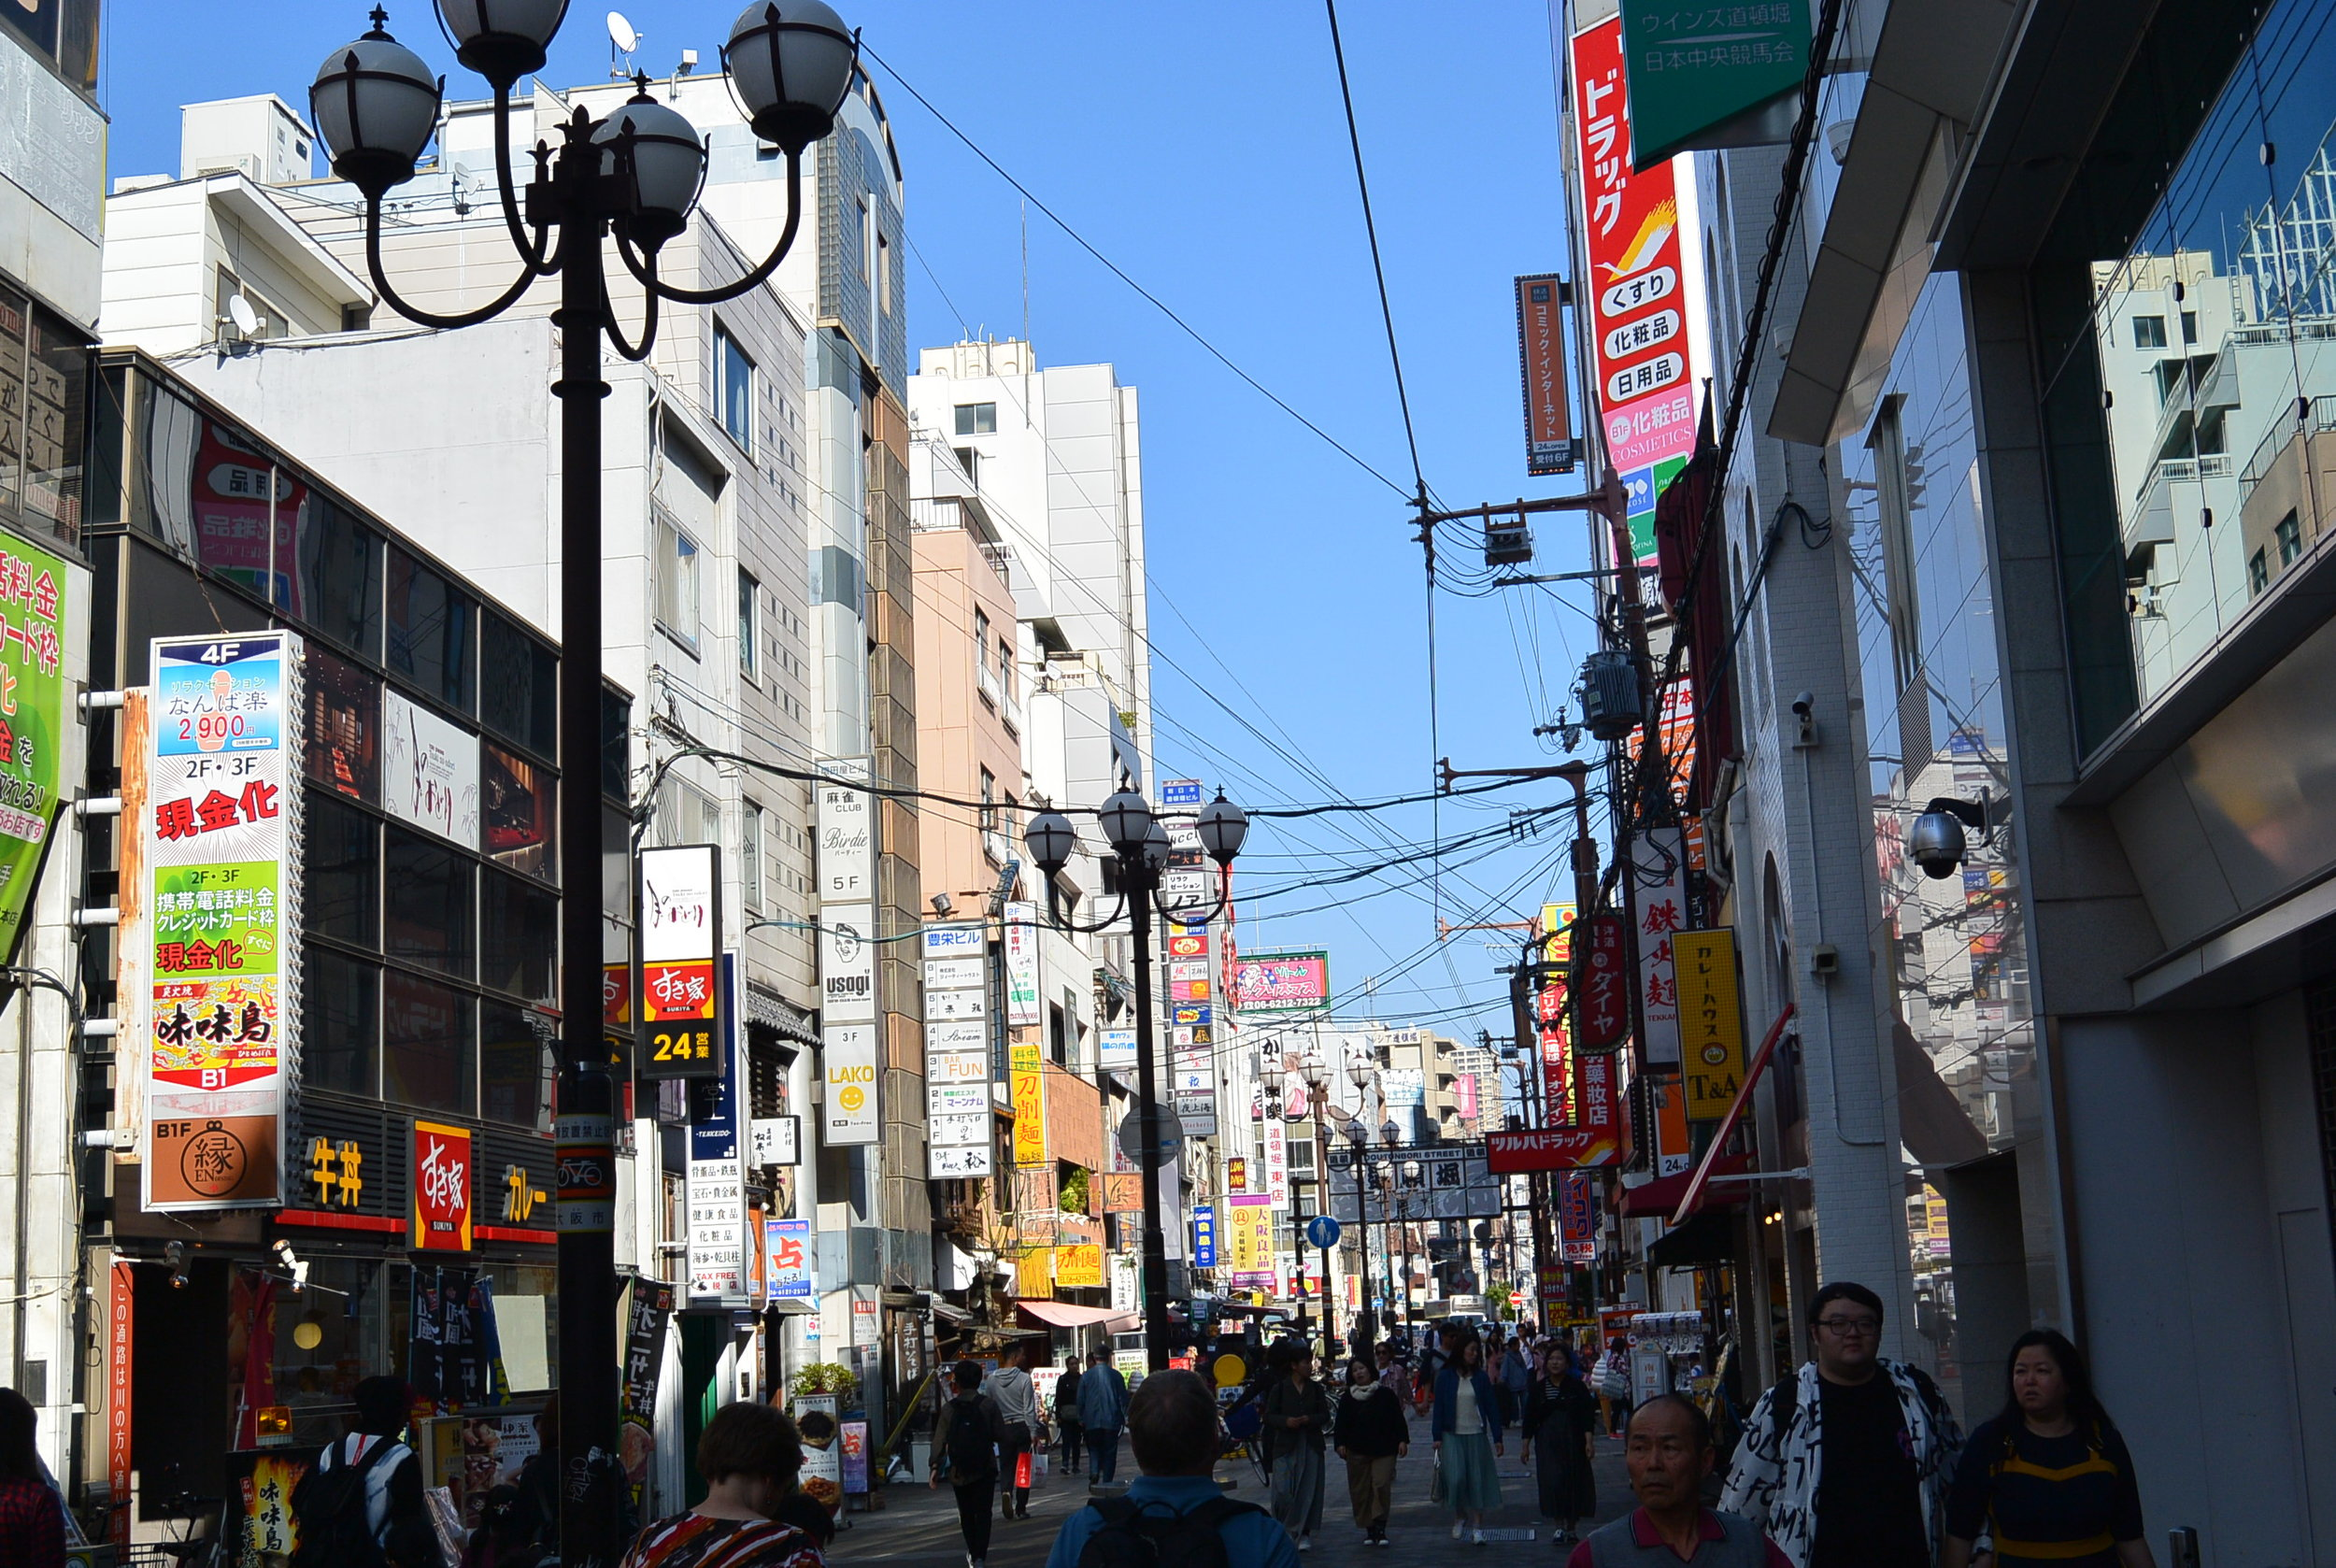 Day 1-3: Welcome to Kansai!